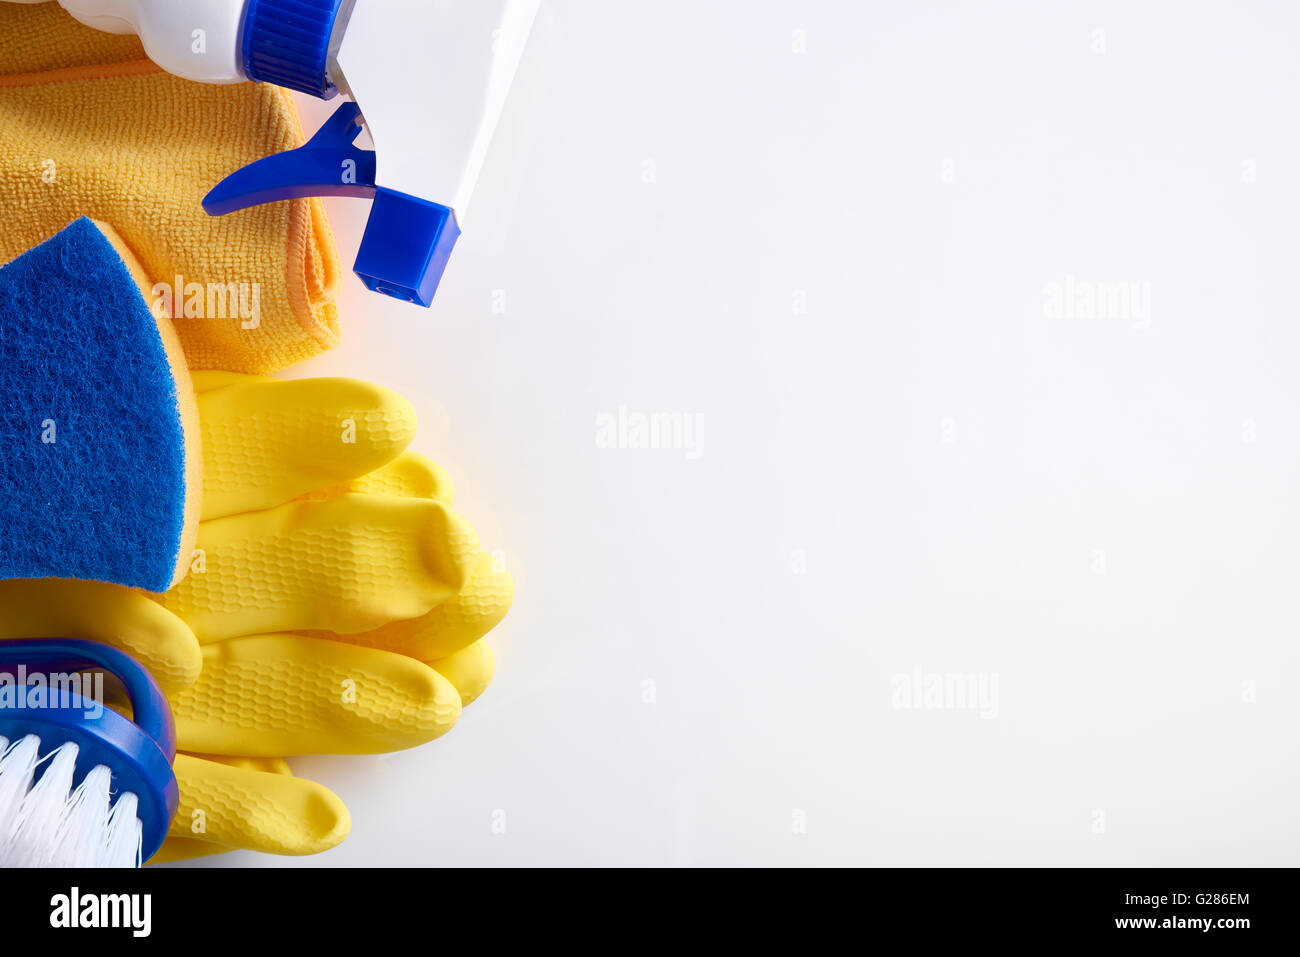 Professional cleaning equipment on white table. Cleaning tools company concept. Top view. Horizontal composition. - Stock Image